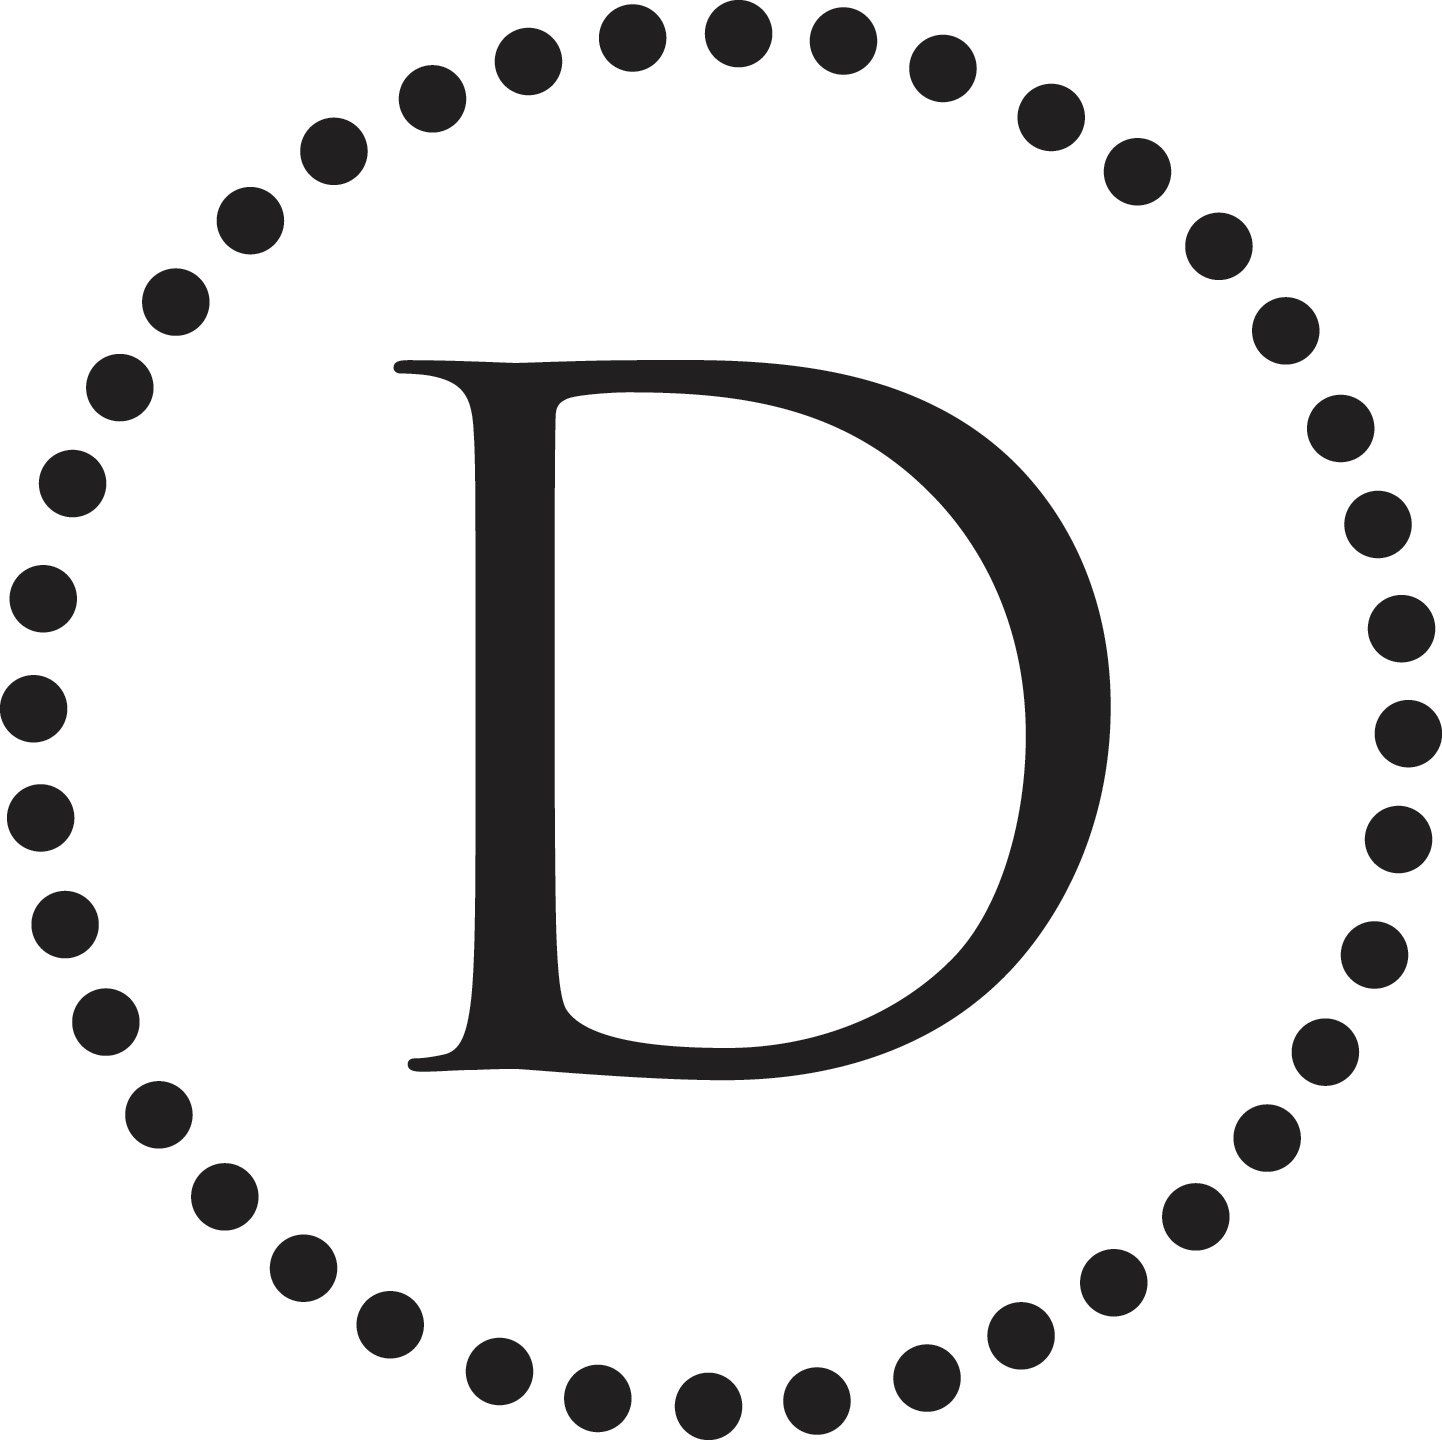 Dotted Circle Initial